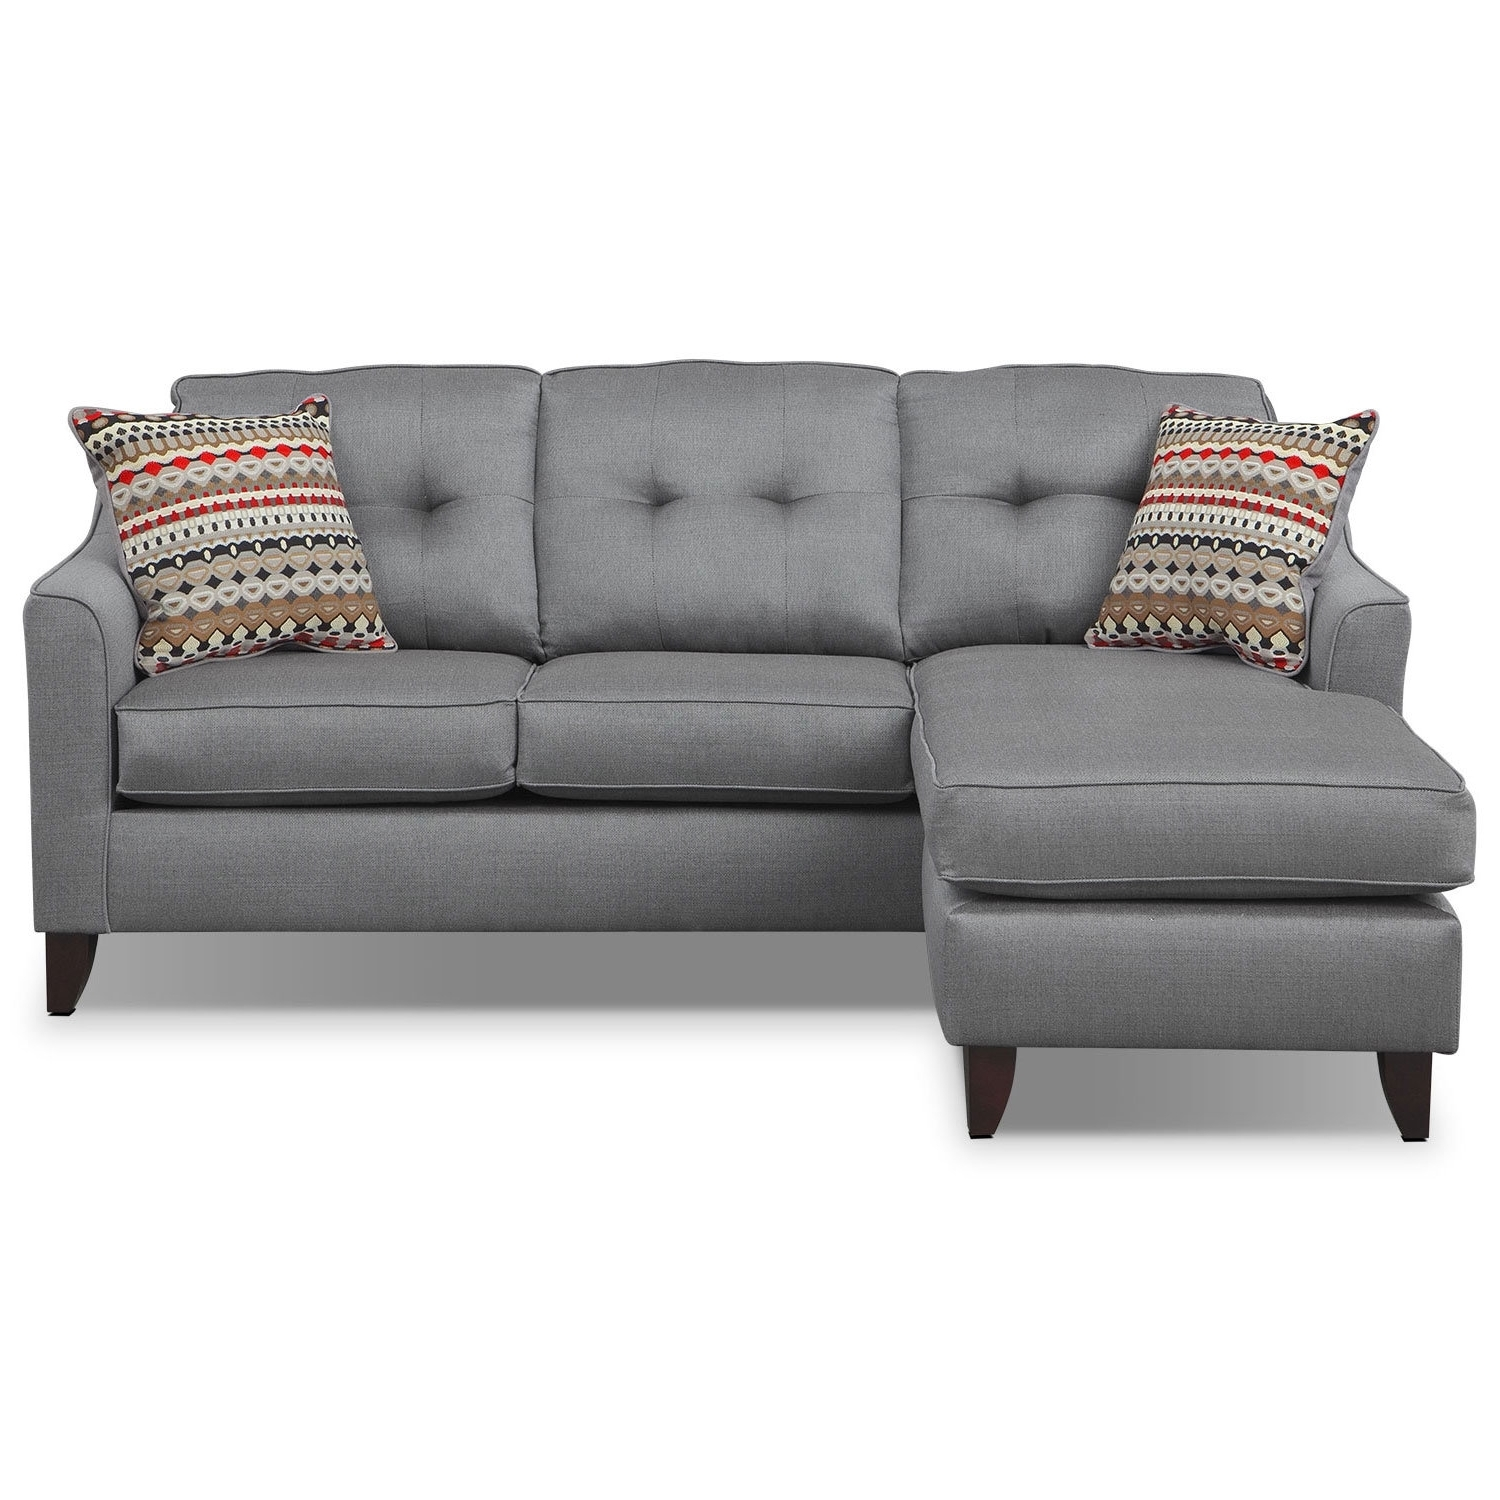 Sofas And More Knoxville Tn Simple Minimalist Home Ideas